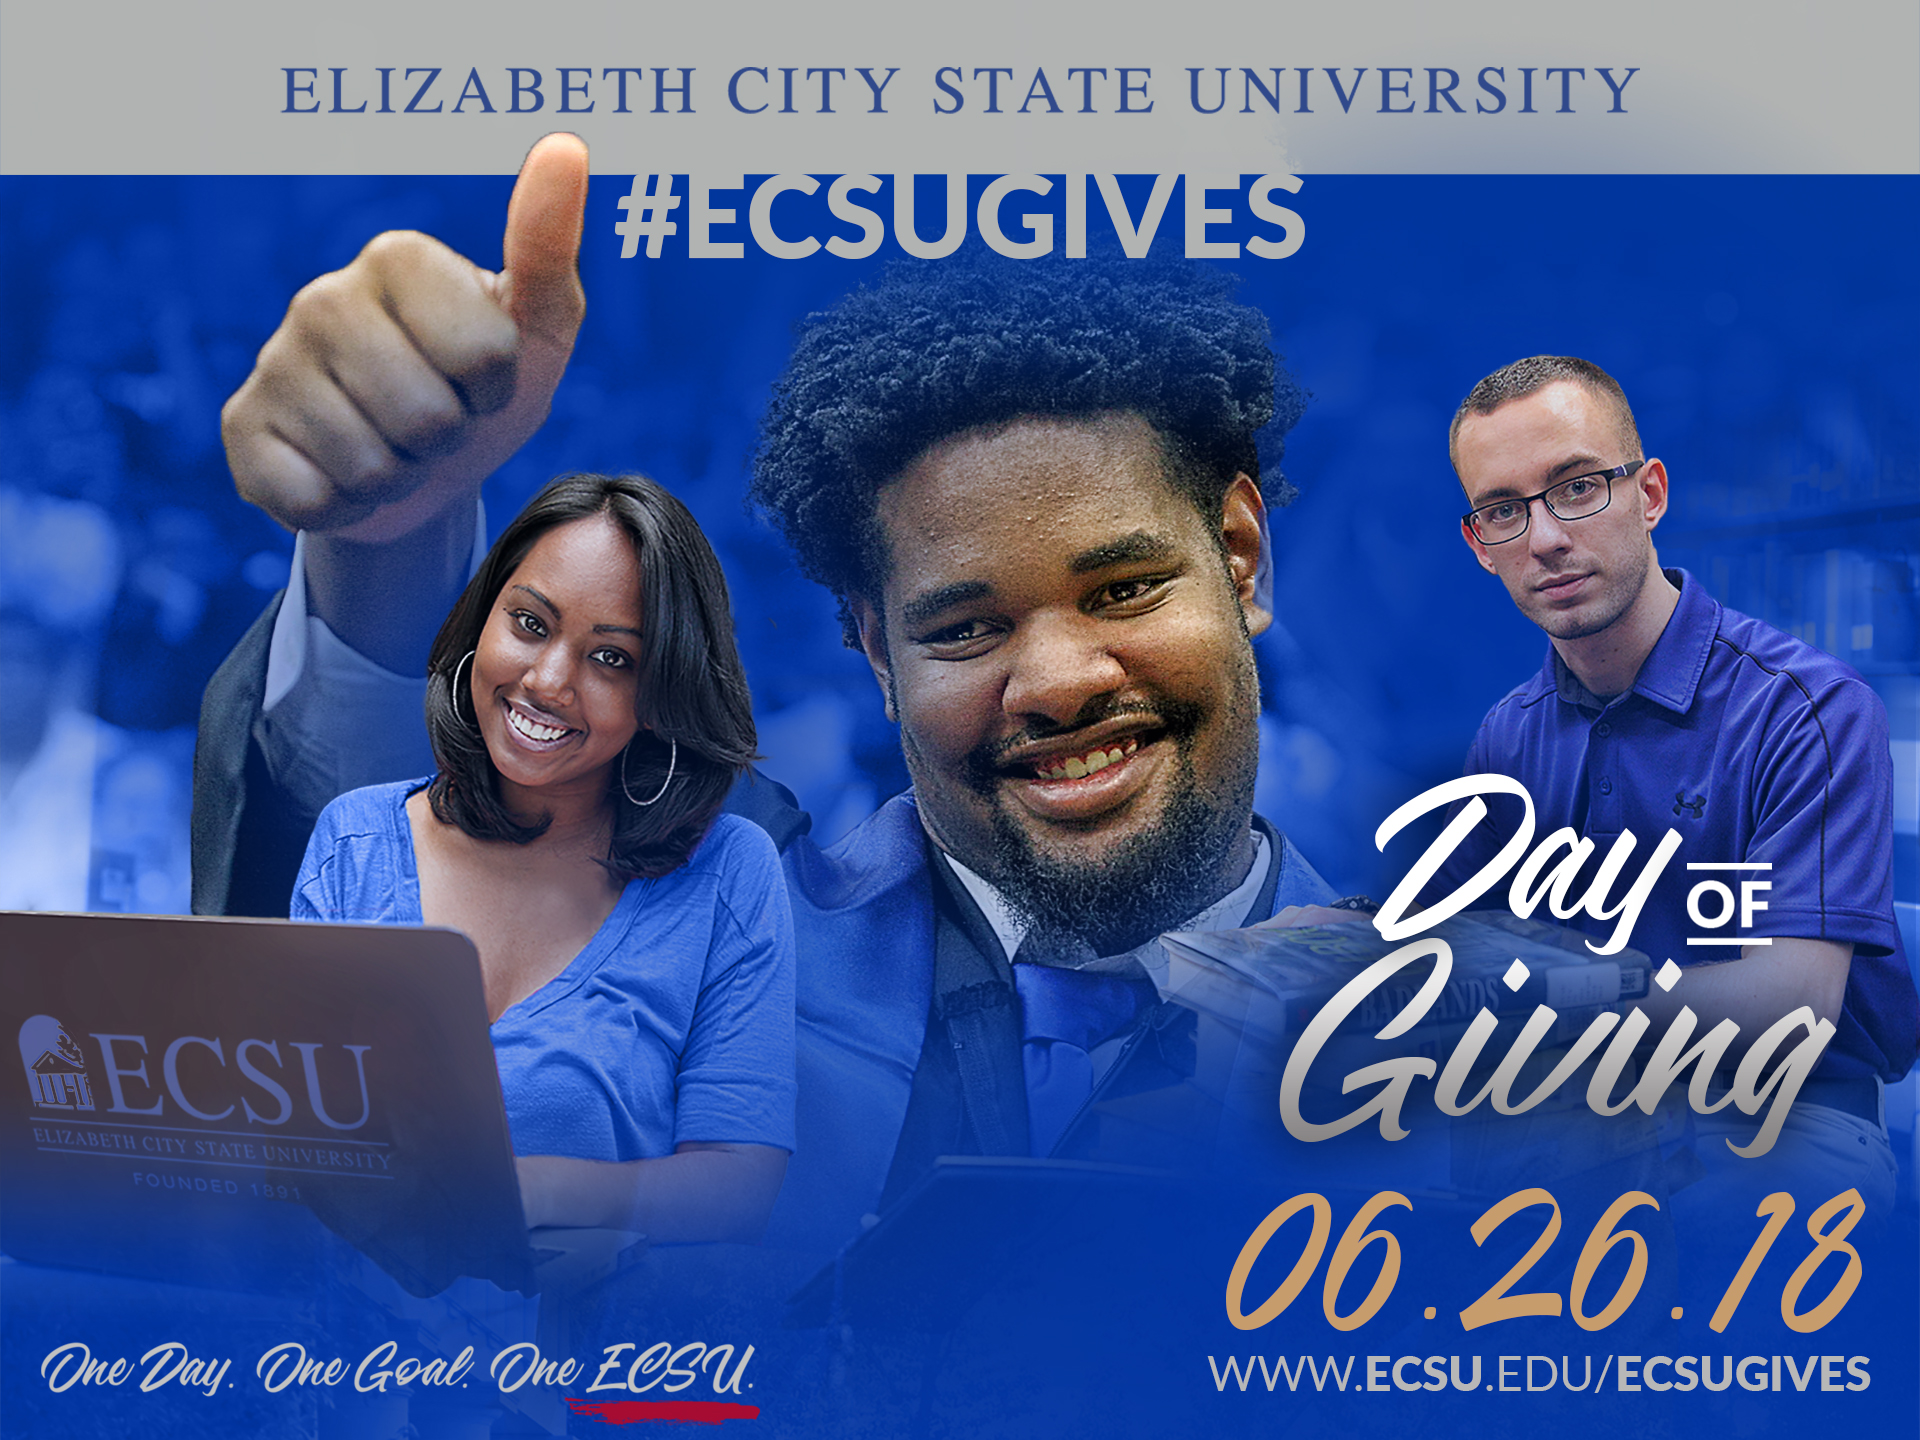 Ecsu day of giving general social media5